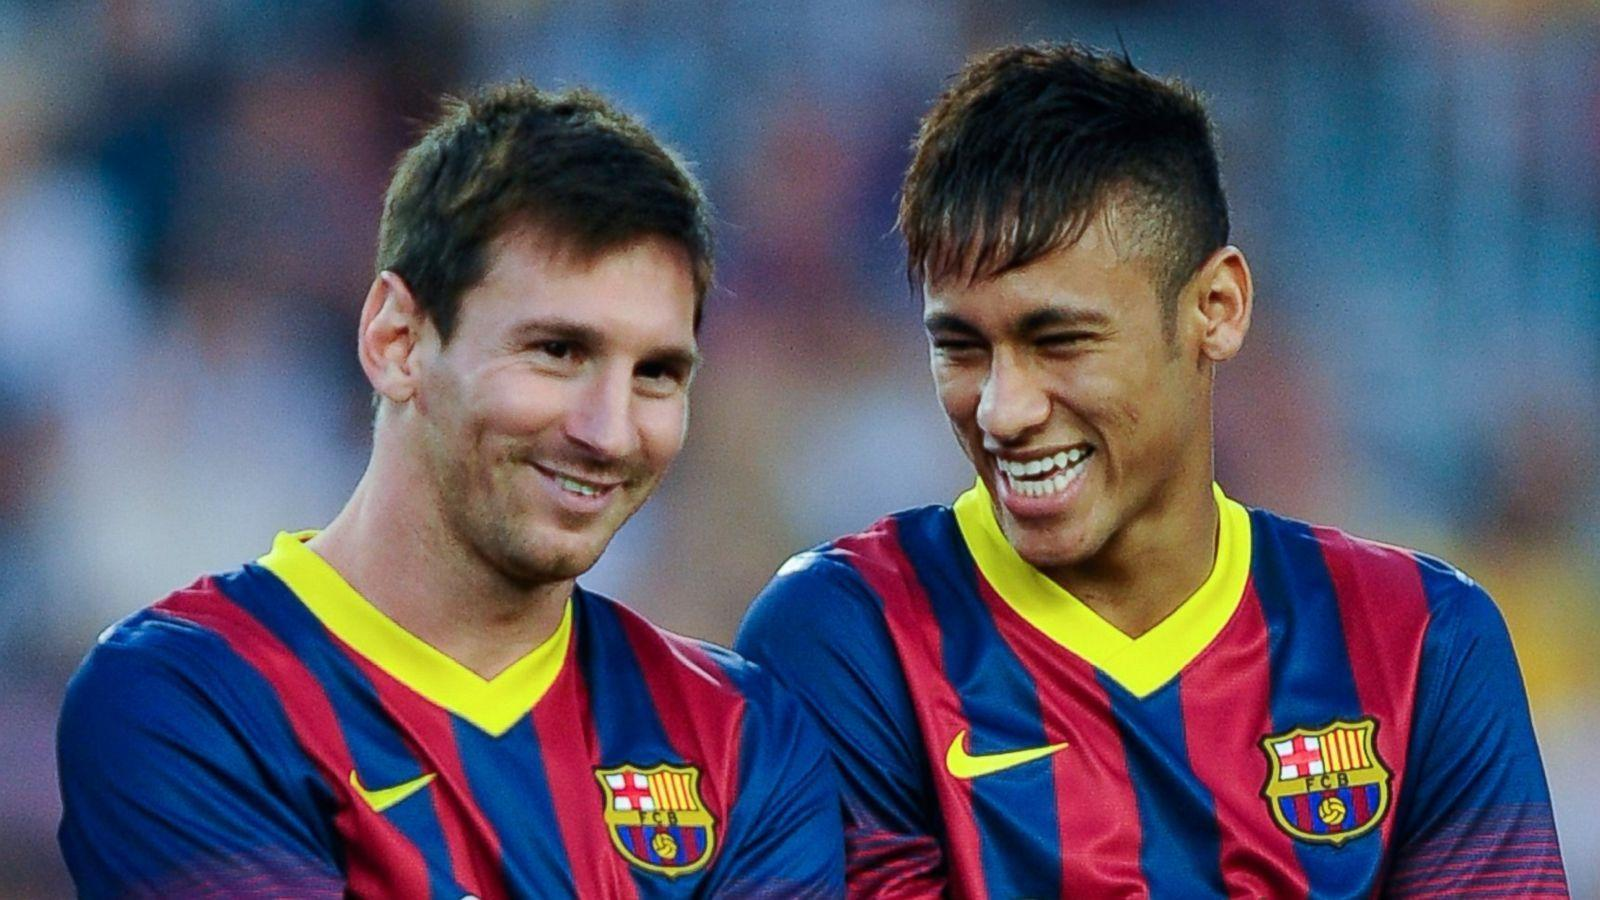 Messi And Neymar Wallpapers Wallpaper Cave